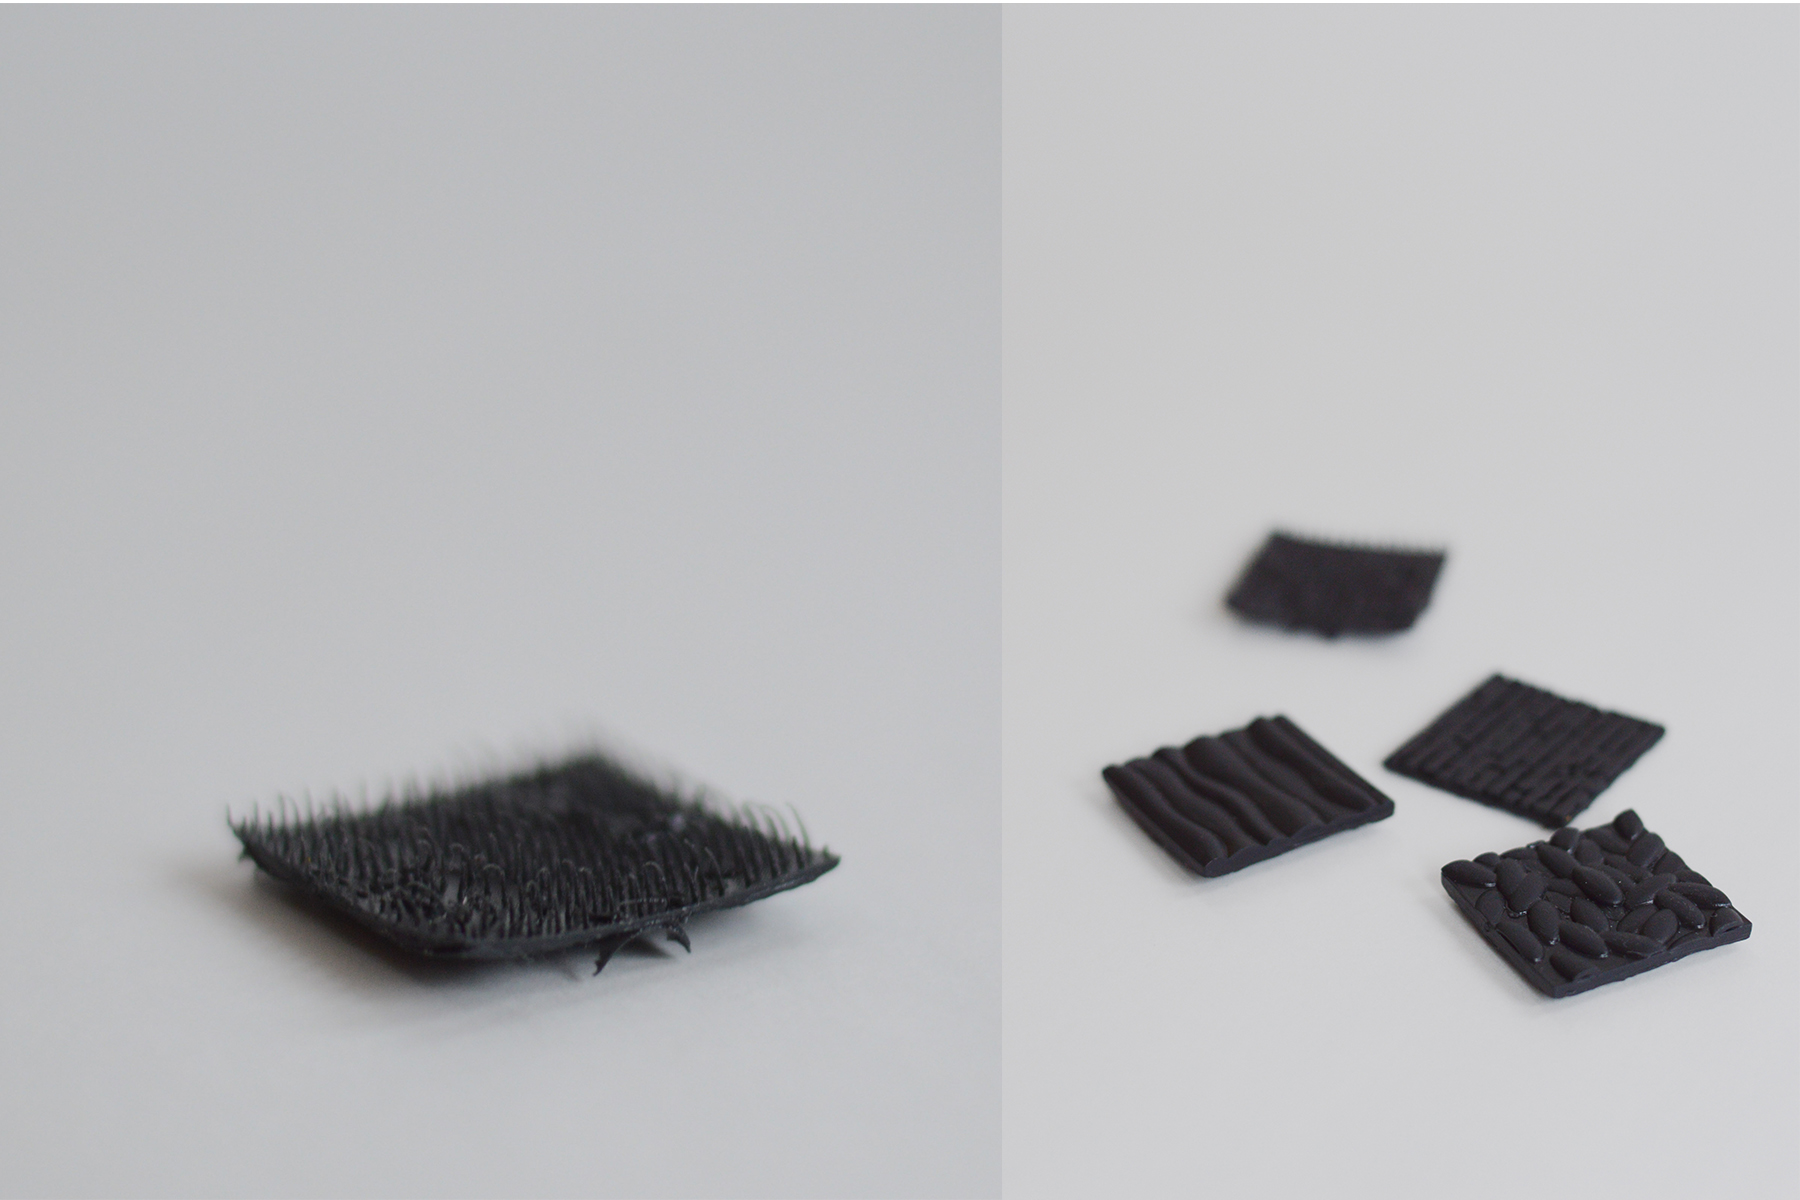 Texture tiles 3D printed in black resin.